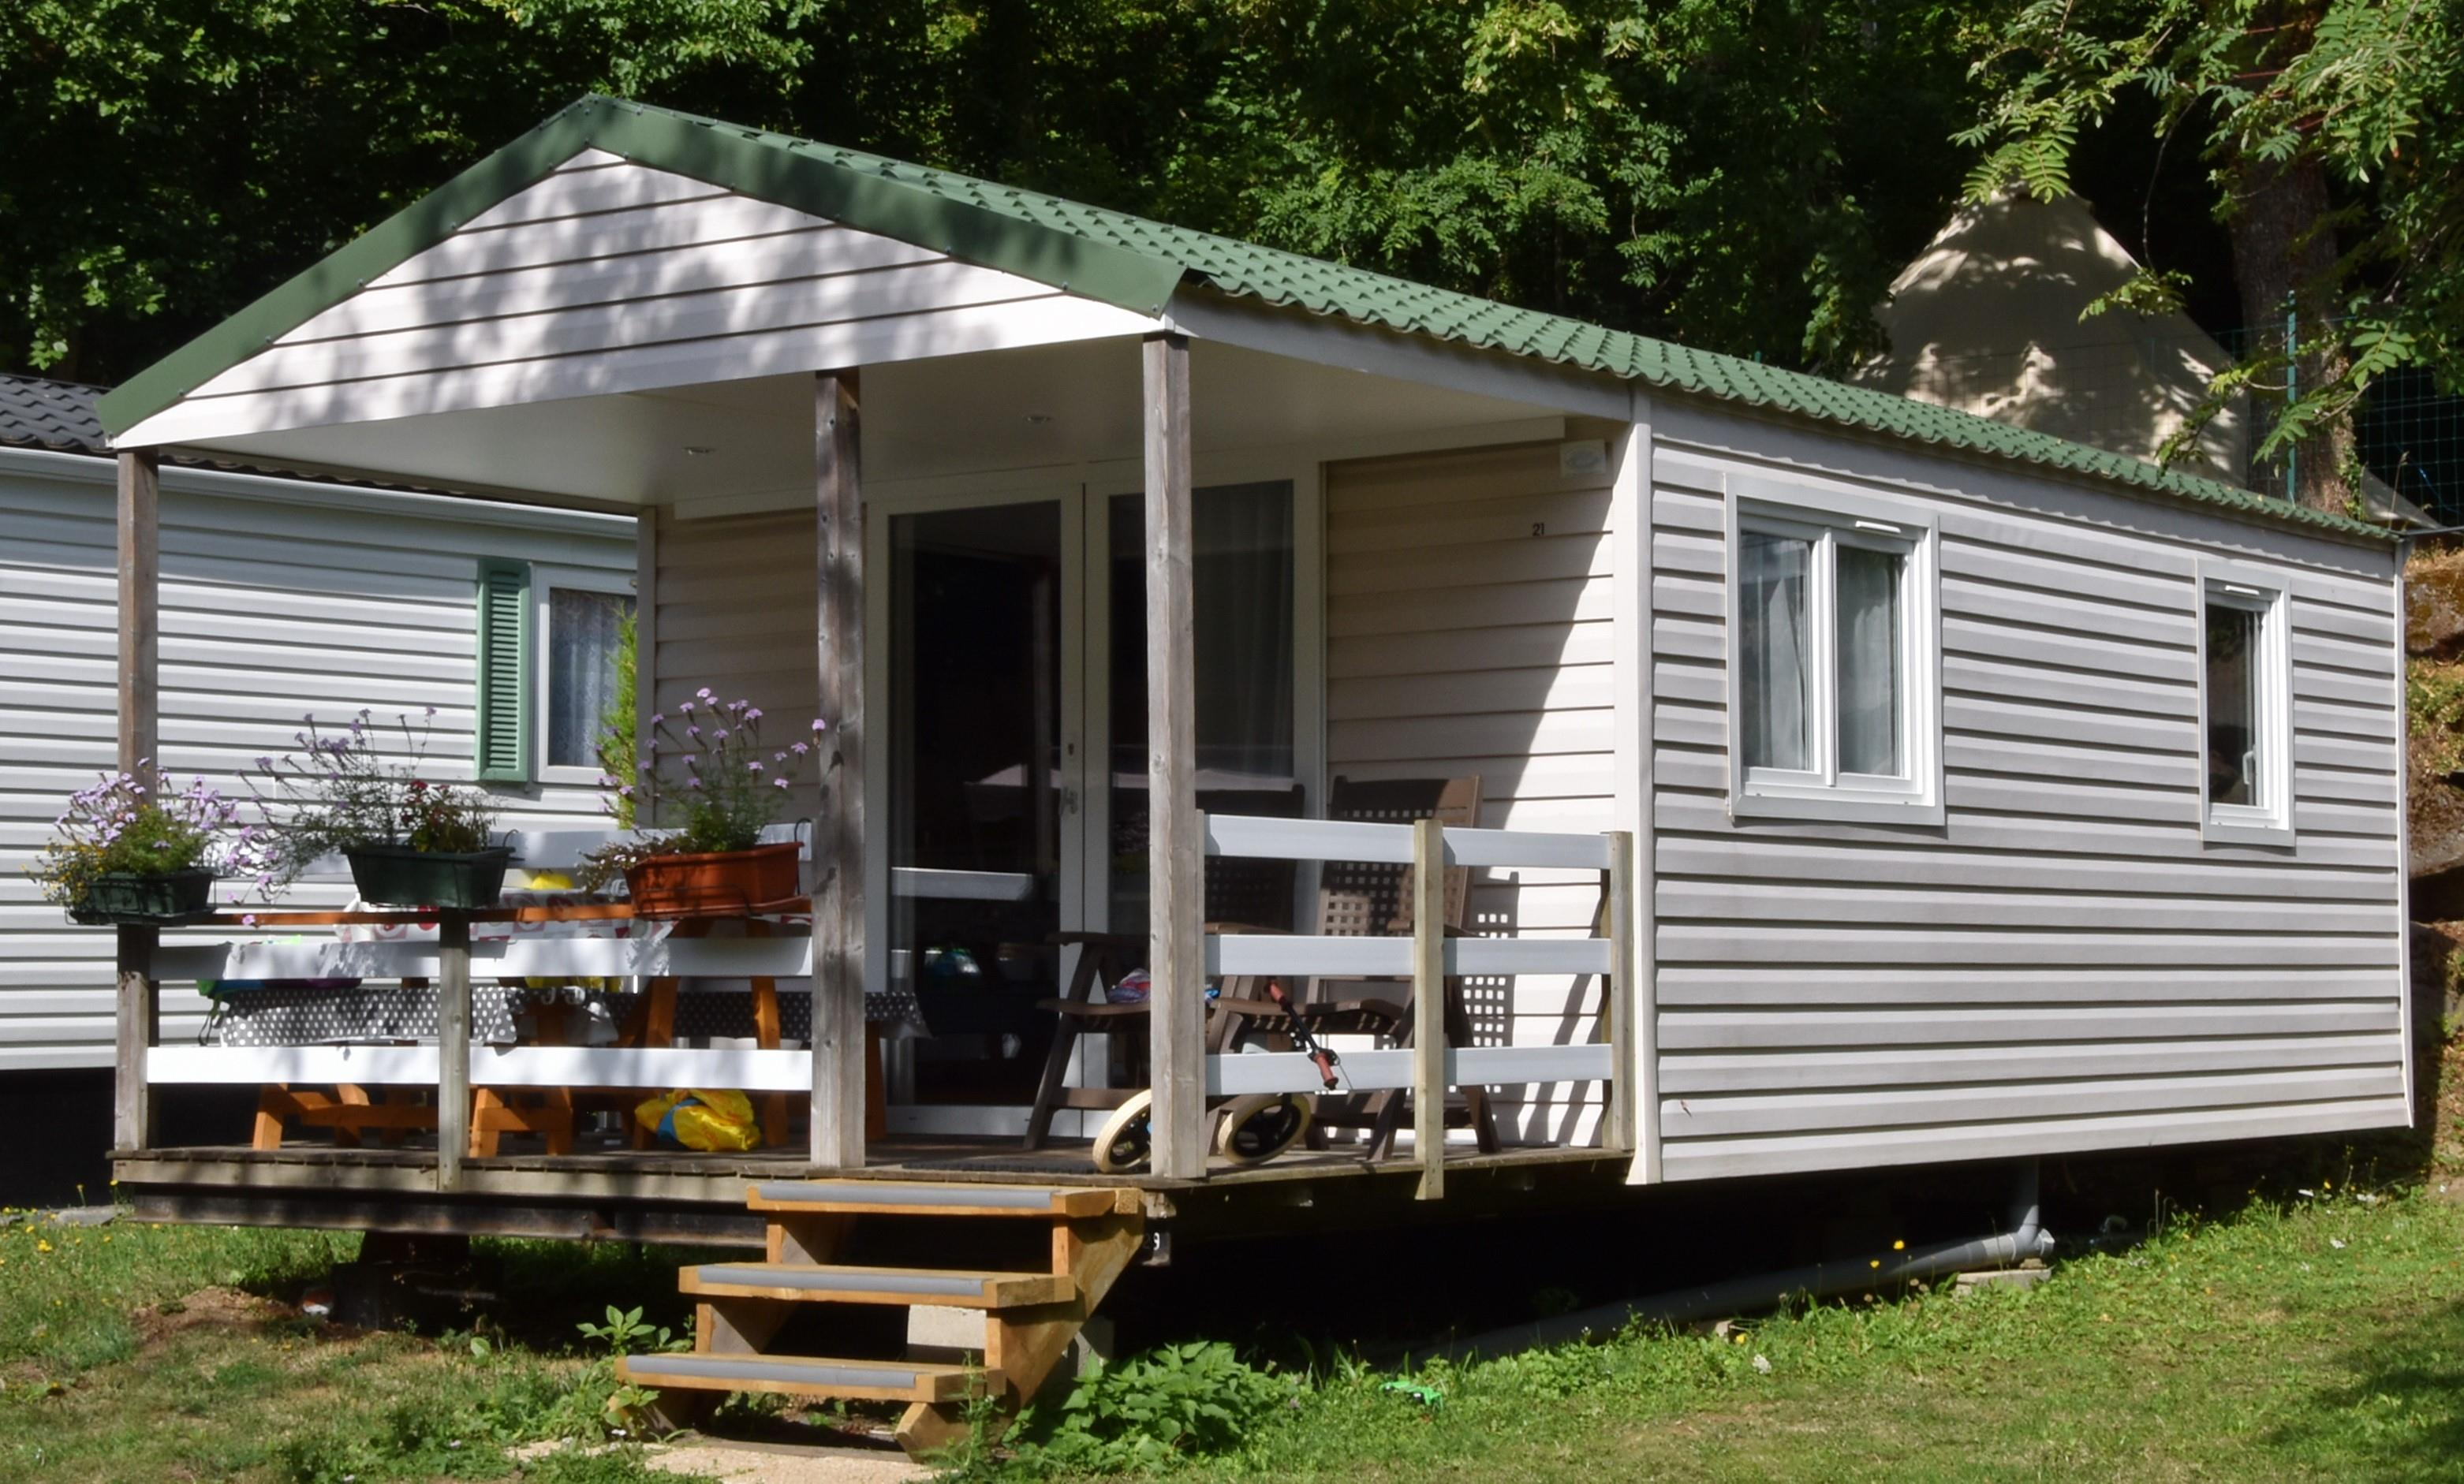 Location - Mobil Home Louisiane Mediterranee 7.75 M X 4.00 M. 2 Chambres - Camping L'Ombrage